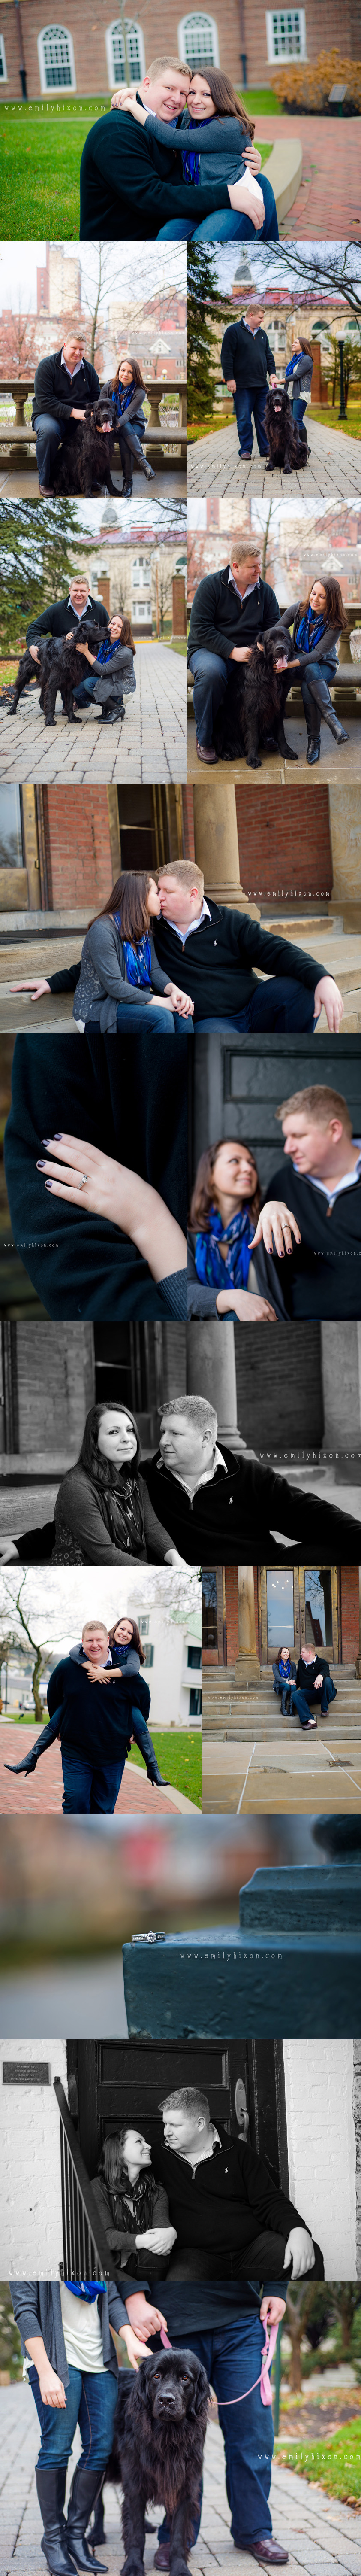 best pittsburgh engagement photographer - emily hixon photography